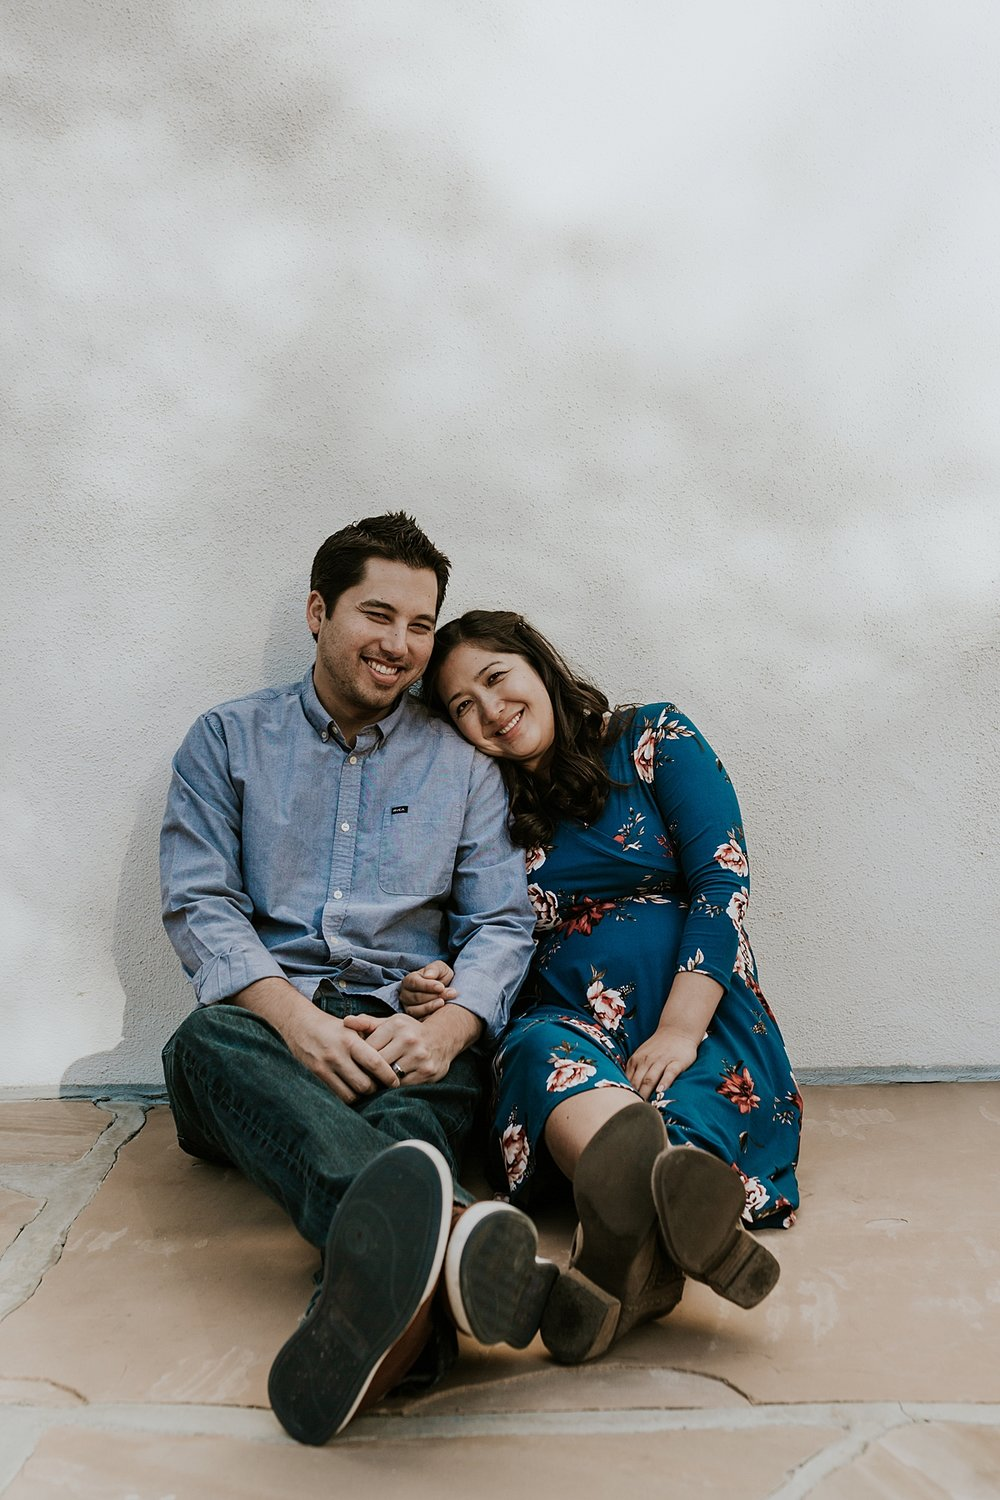 Orange County family photographer. Relaxed candid photo of couple sitting against wall during maternity photo shoot at Noguchi Garden Costa Mesa